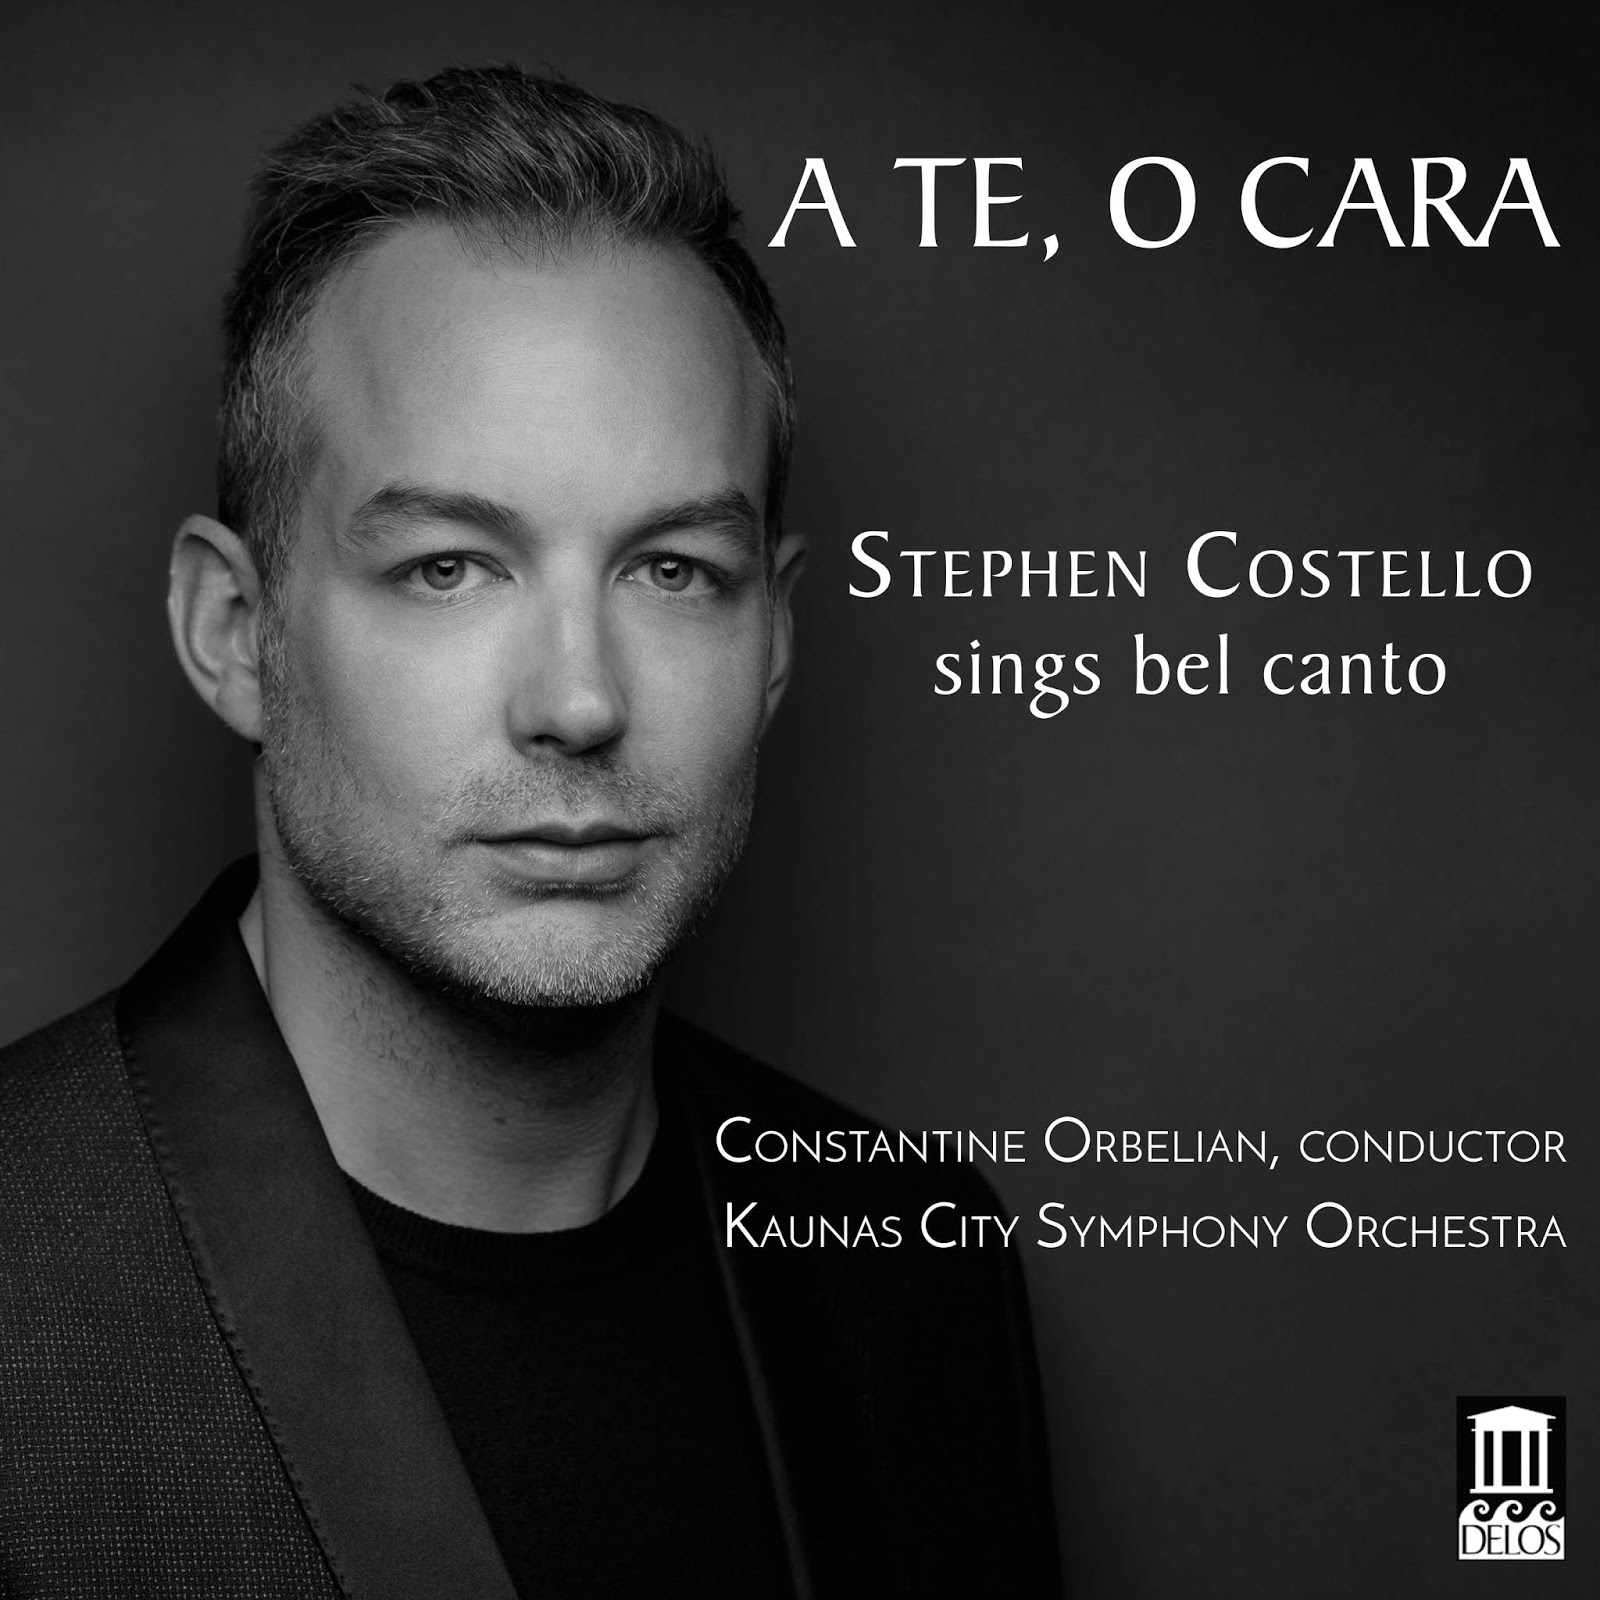 BEST VOCAL RECITAL DISC OF 2018: A TE, O CARA - Stephen Costello sings bel canto (Delos DE 3541)